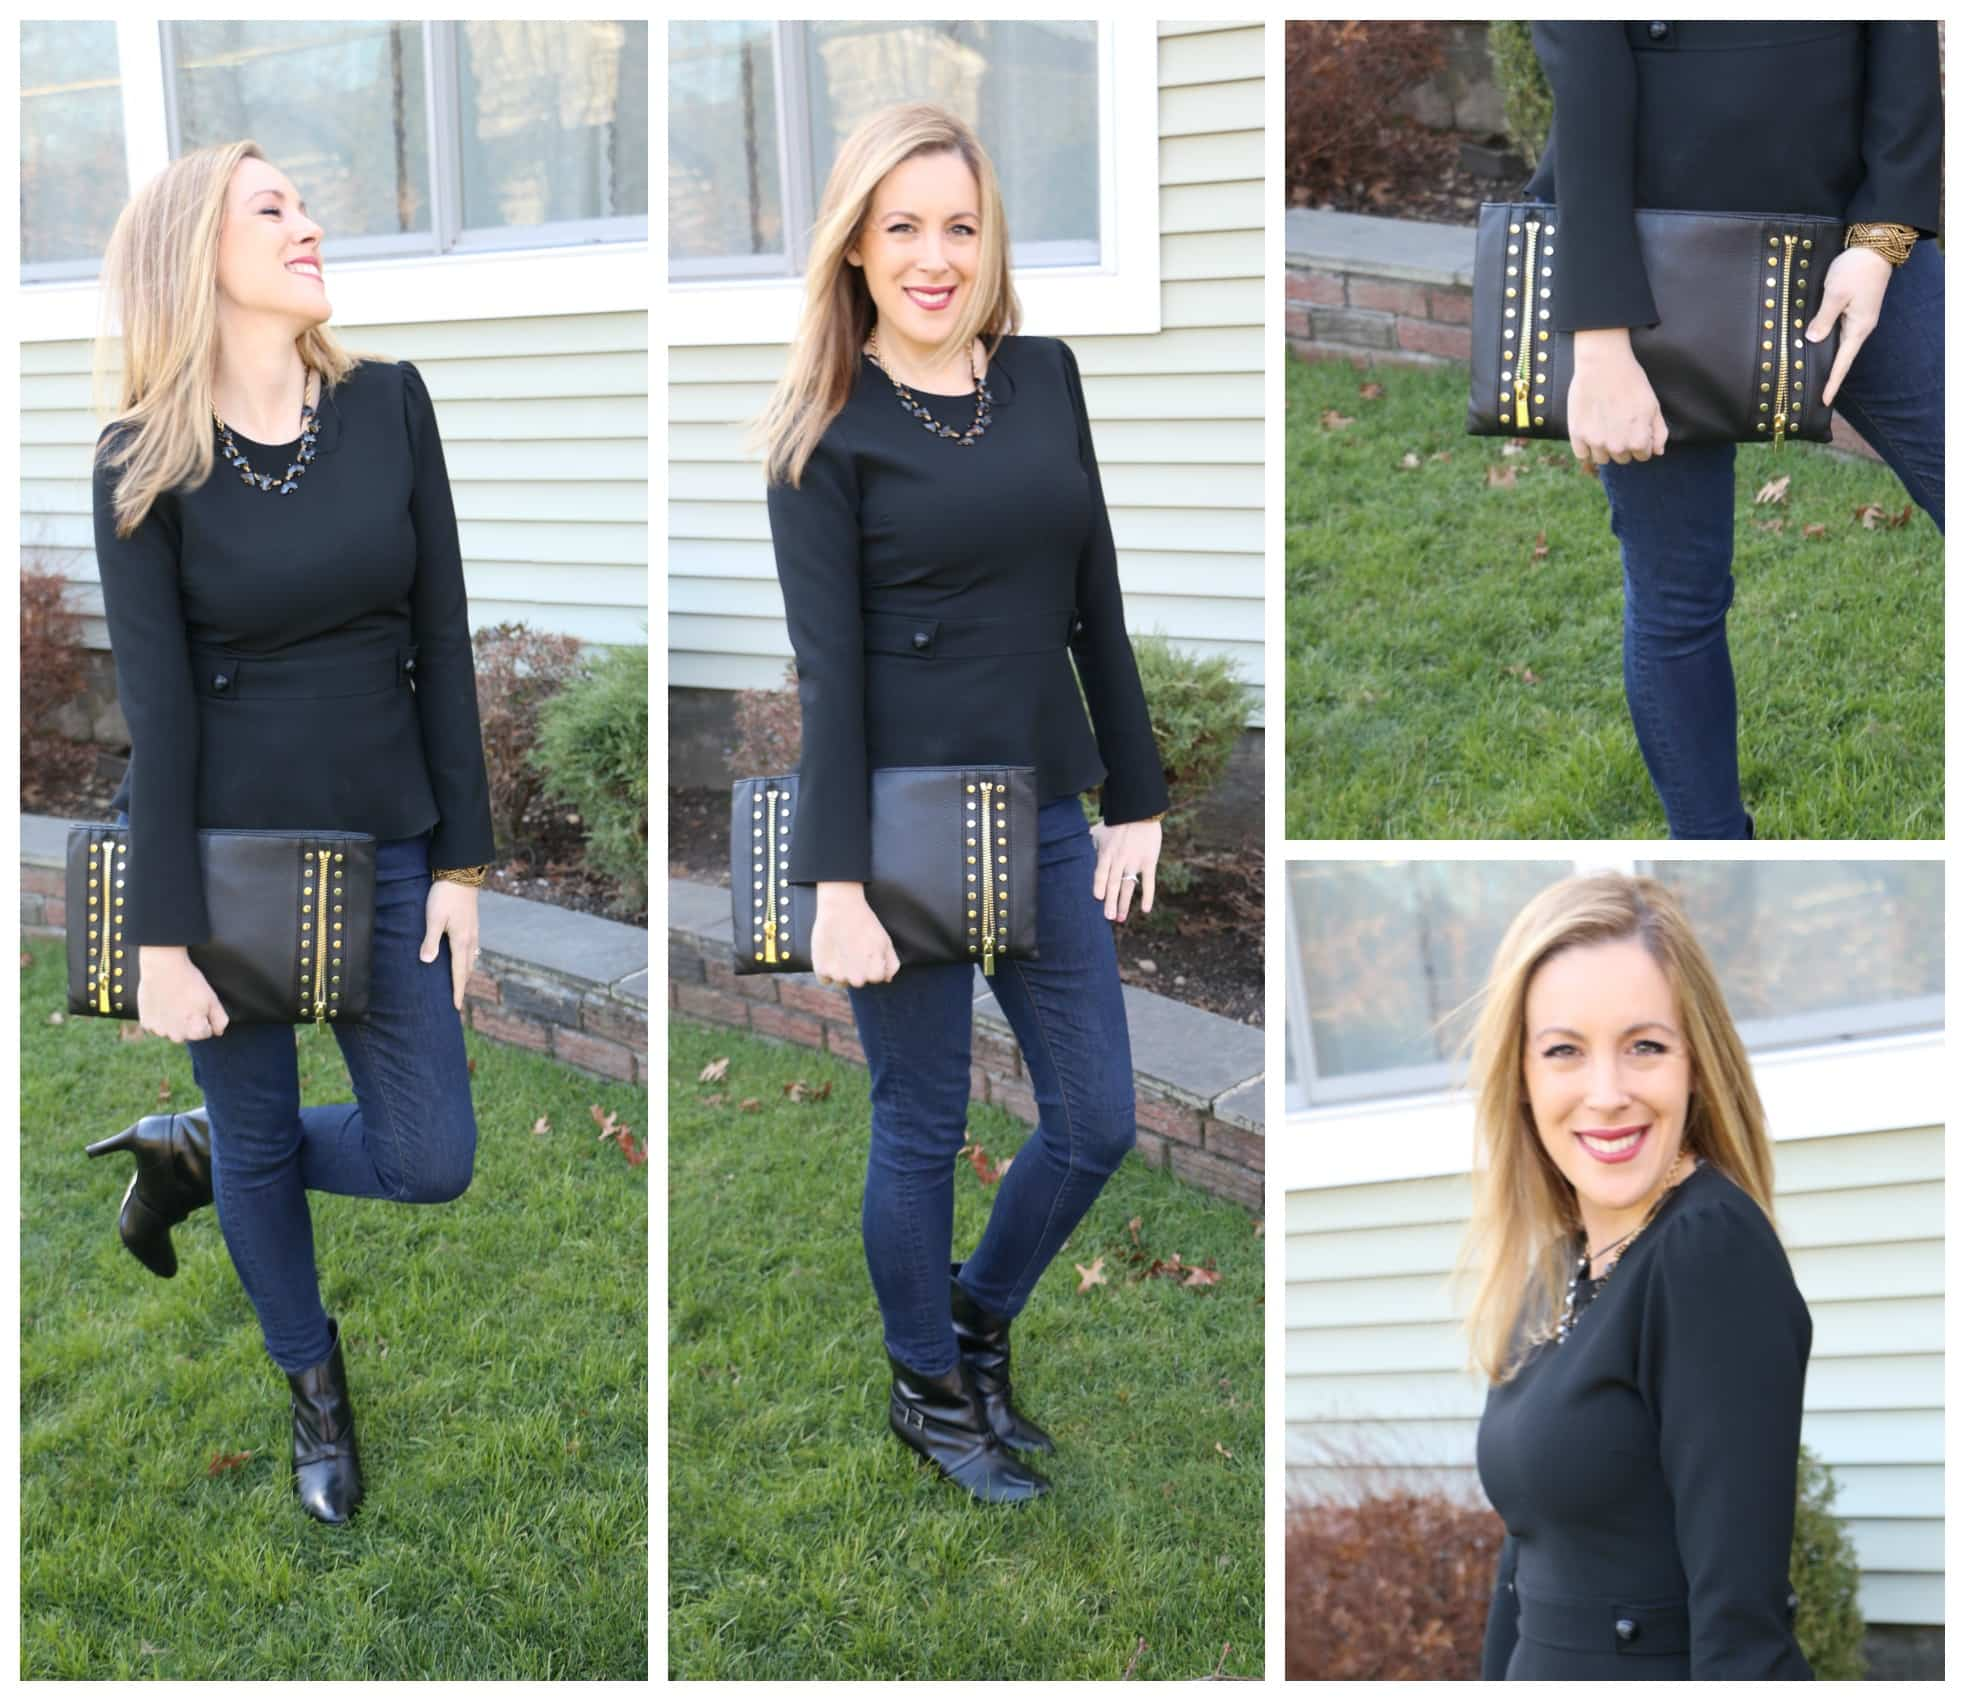 What She Wore: Lady In Black